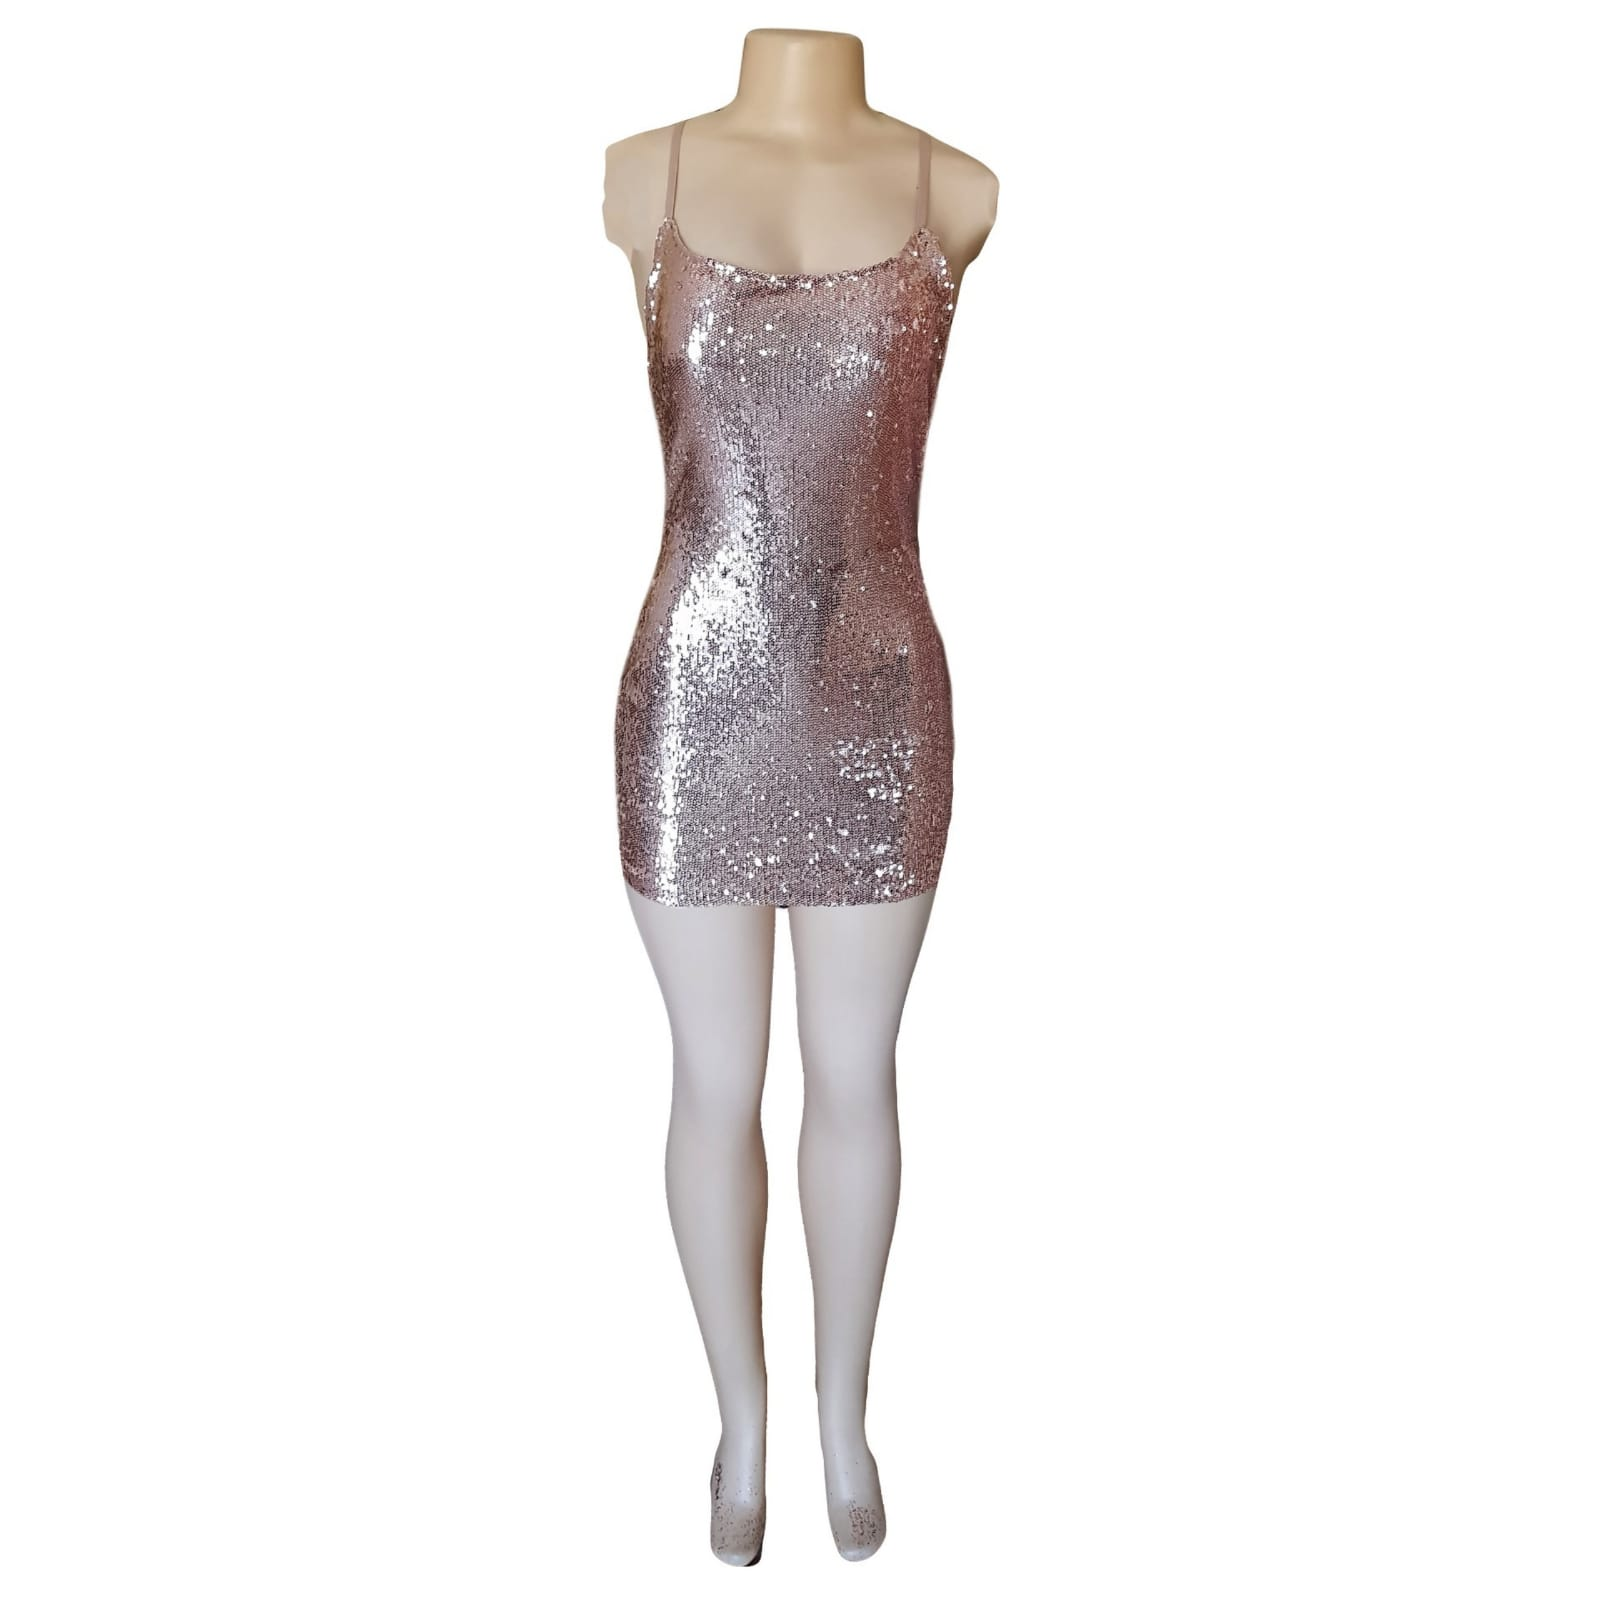 Short mini rose gold fully sequins smart casual dress 1 short mini rose gold fully sequins smart casual dress with a low open back and thin crossed spaghetti straps.